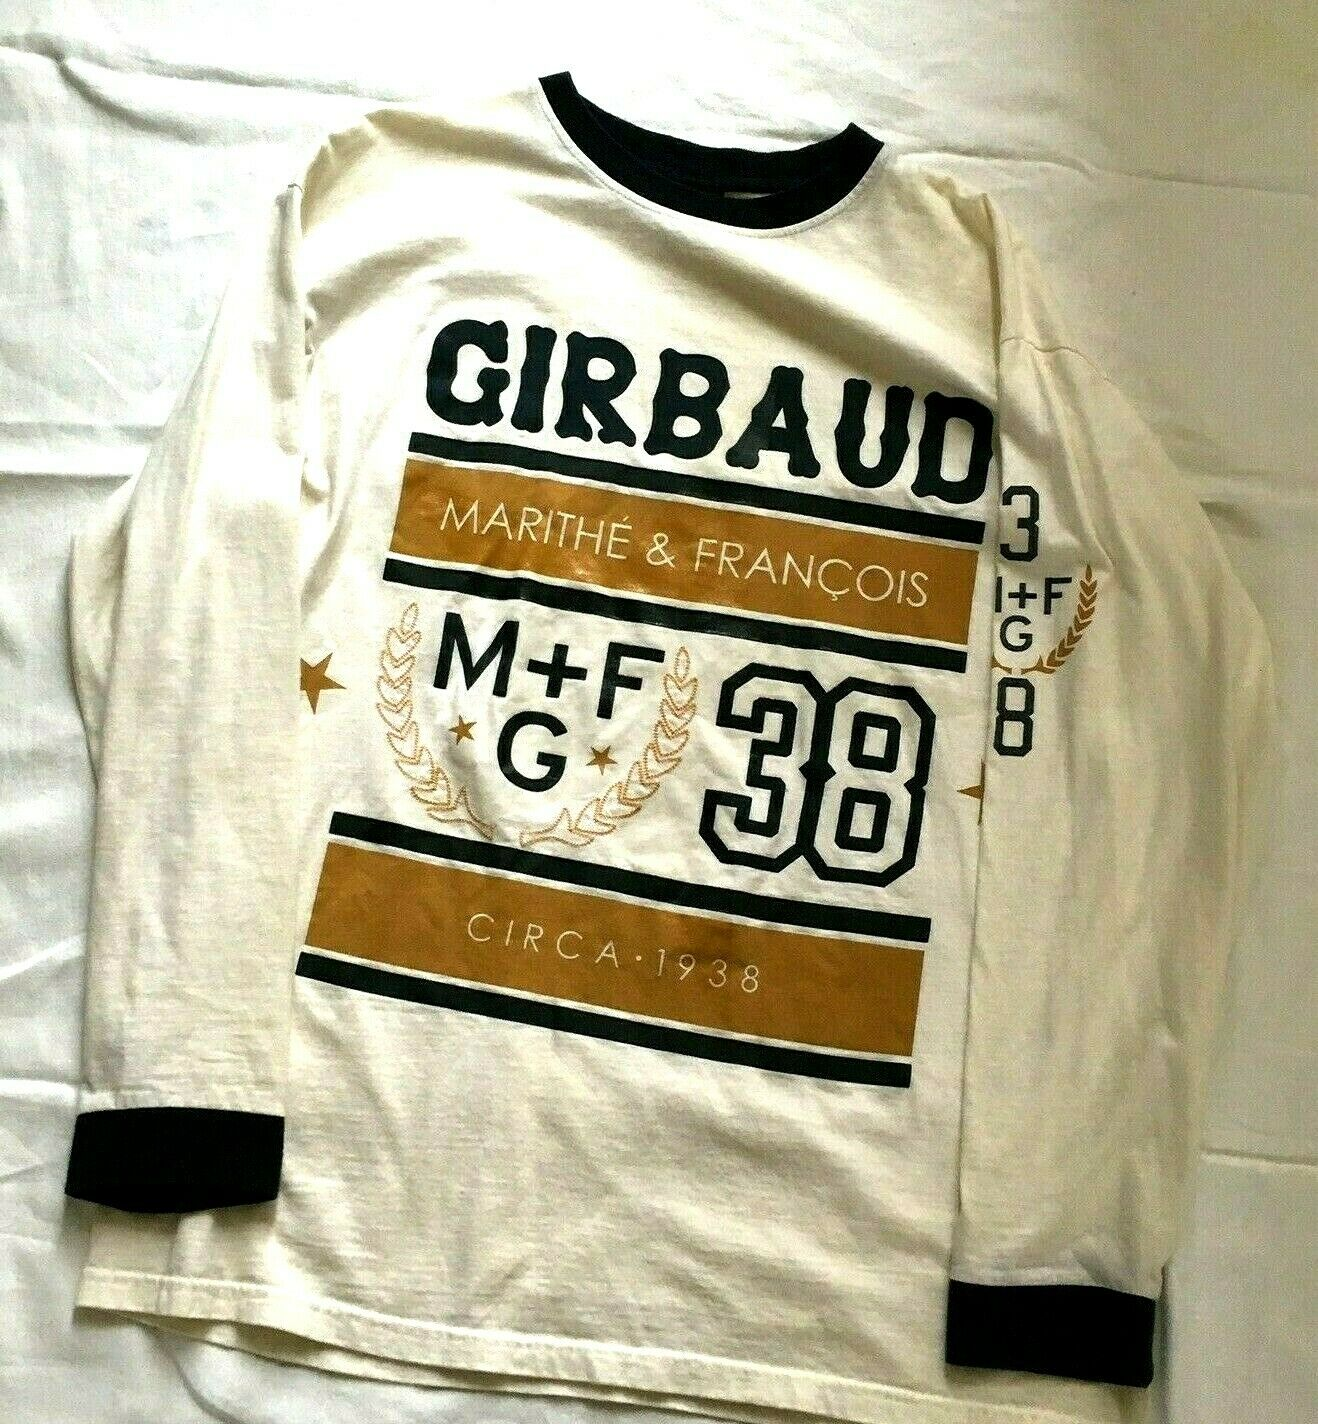 Marithe Francois Girbaud Shirt Marithe Francois Girbaud Polos Vintage 90/'s Marithe Francois Girbaud Made In Japan Size M